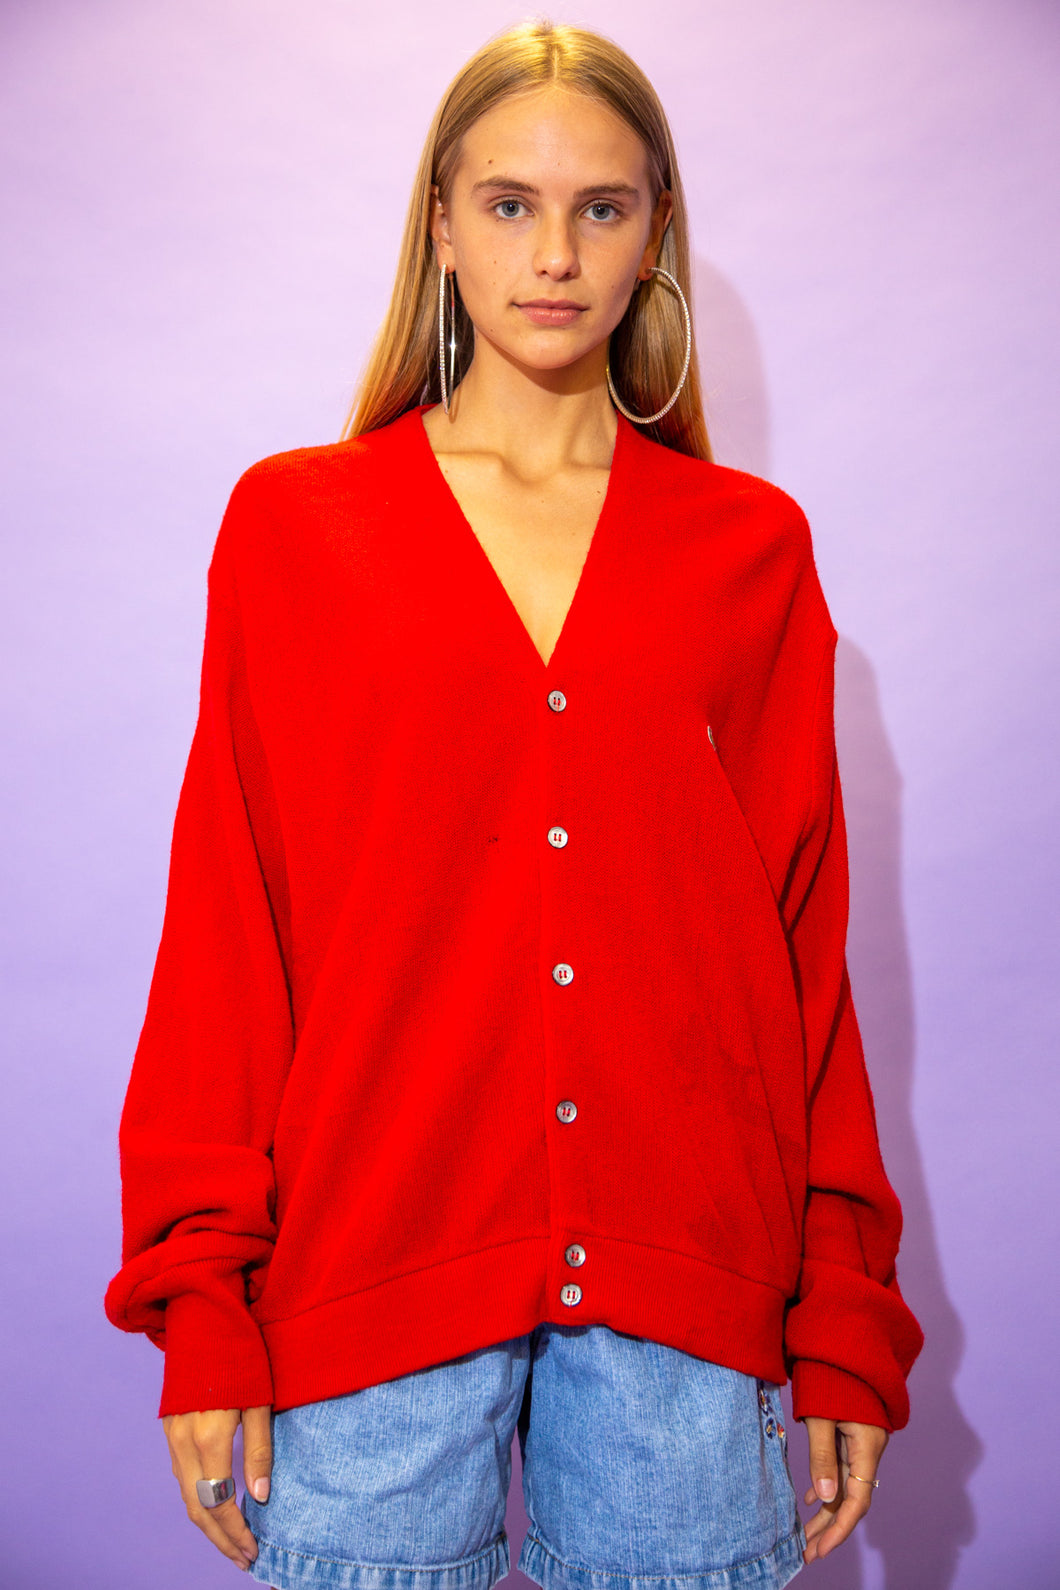 the model wears an oversized red lacoste cardigan